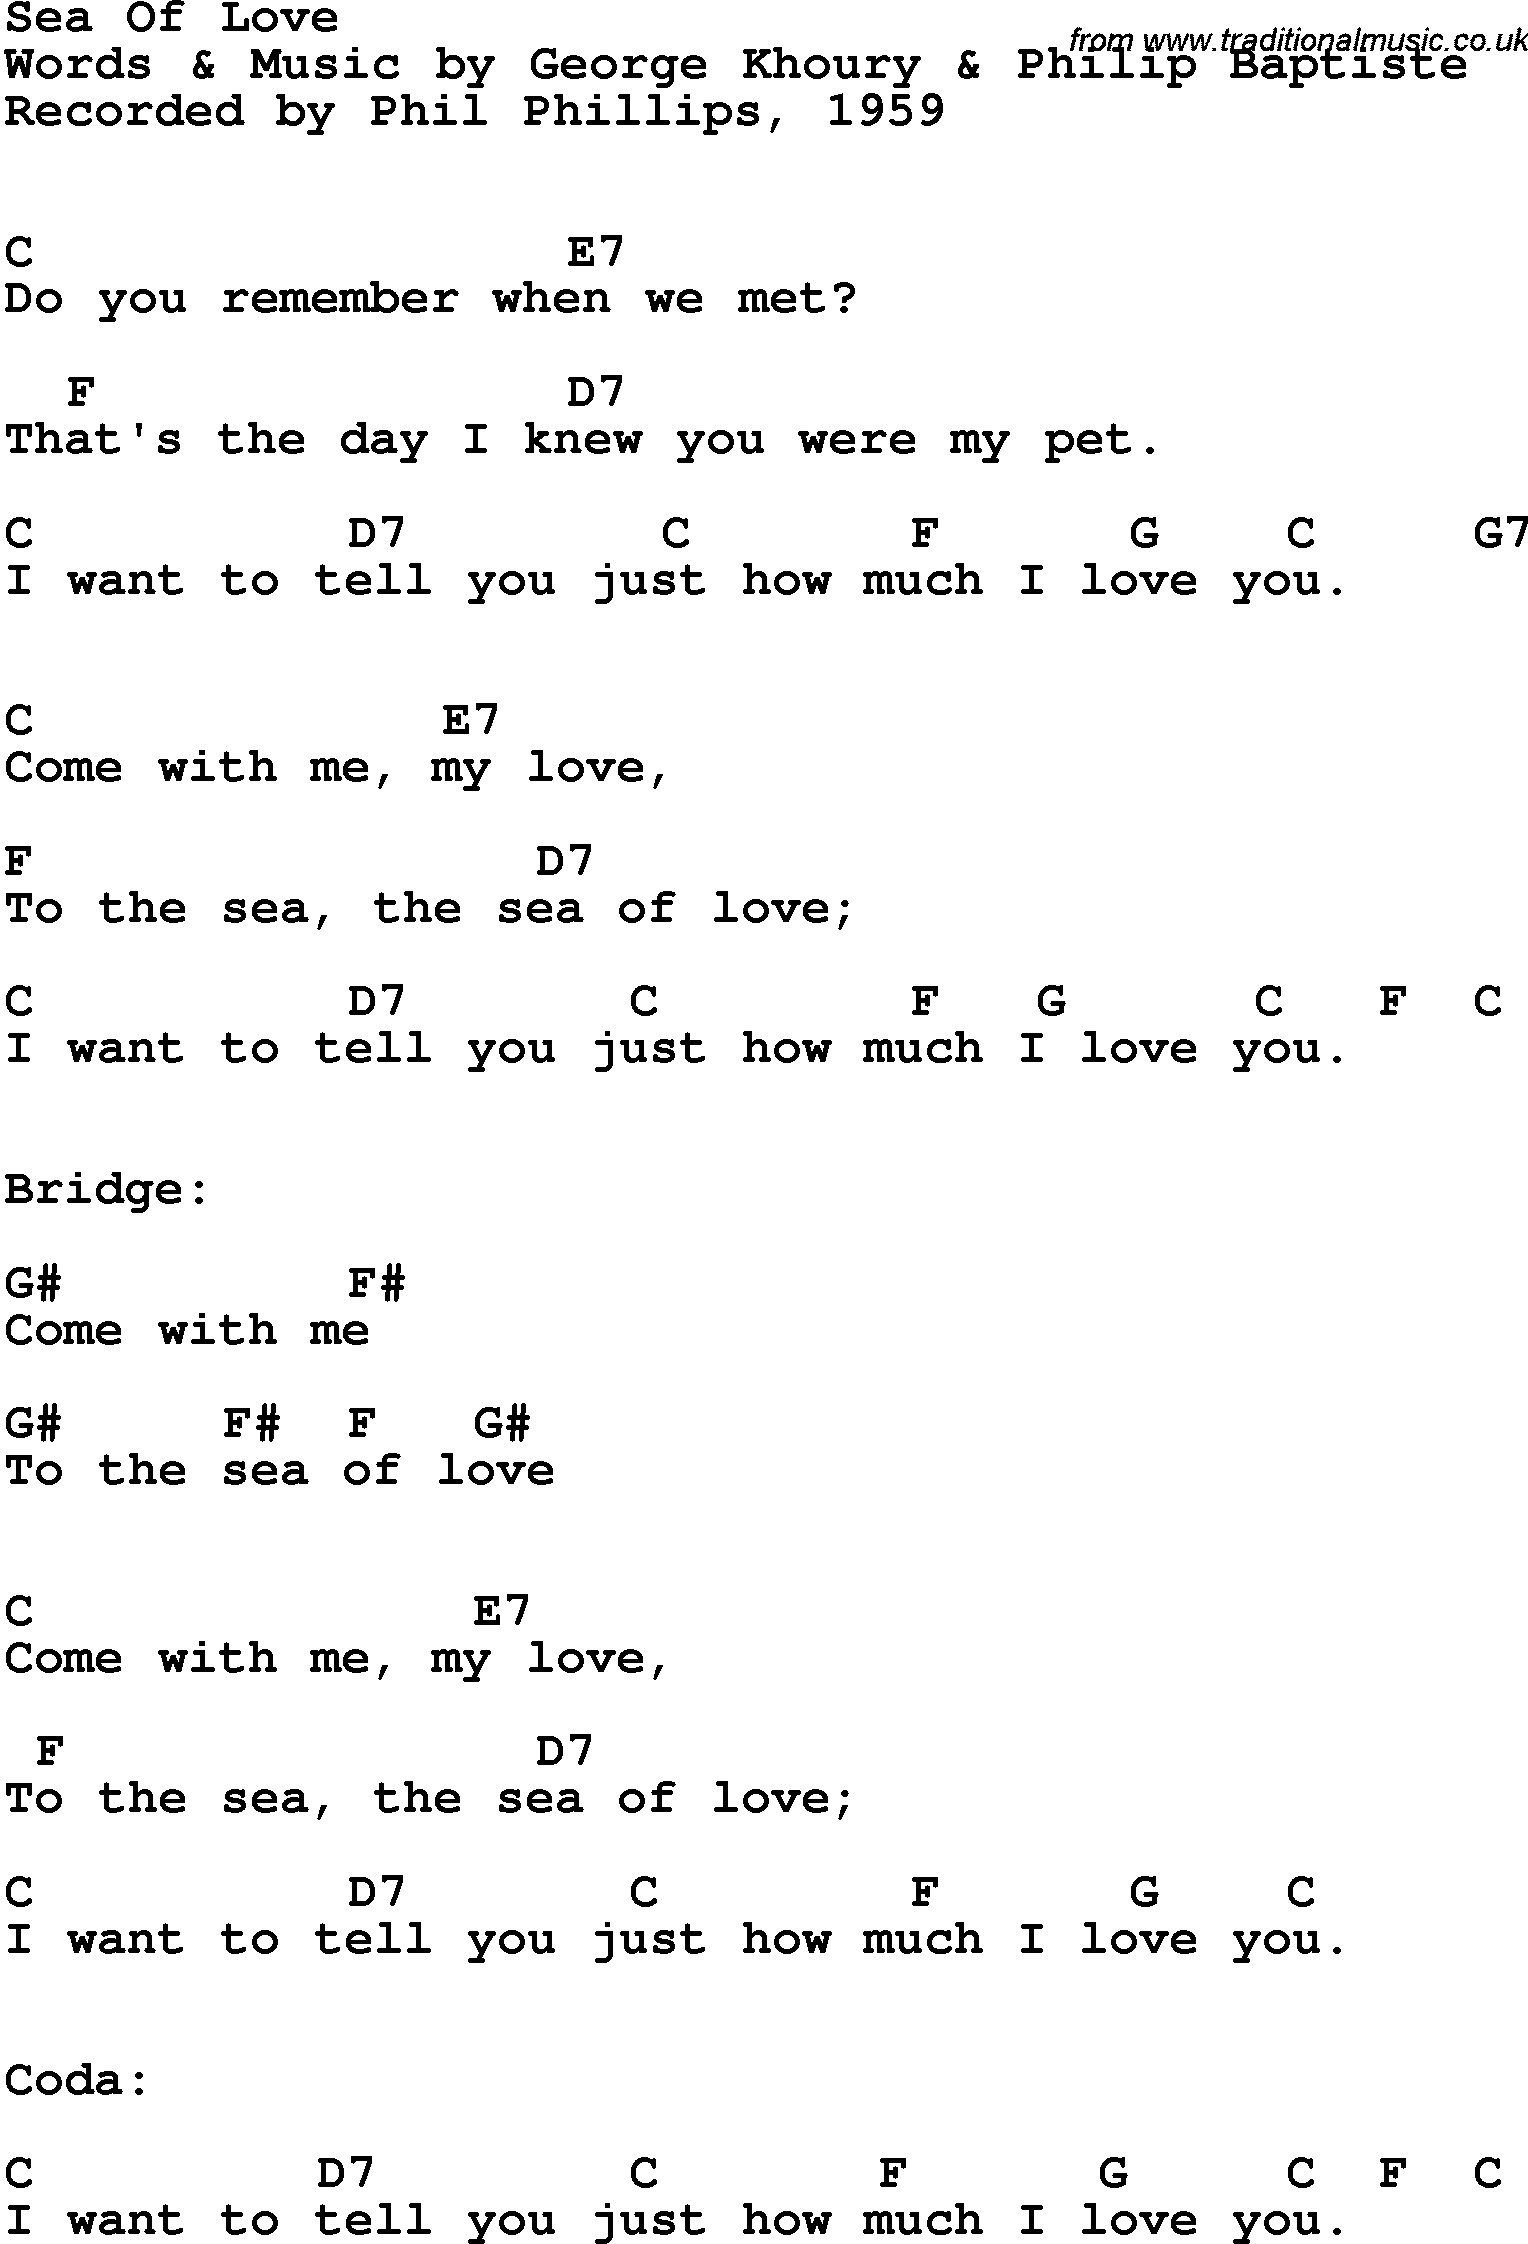 Song Lyrics With Guitar Chords For Sea Of Love Phil Phillips 1959